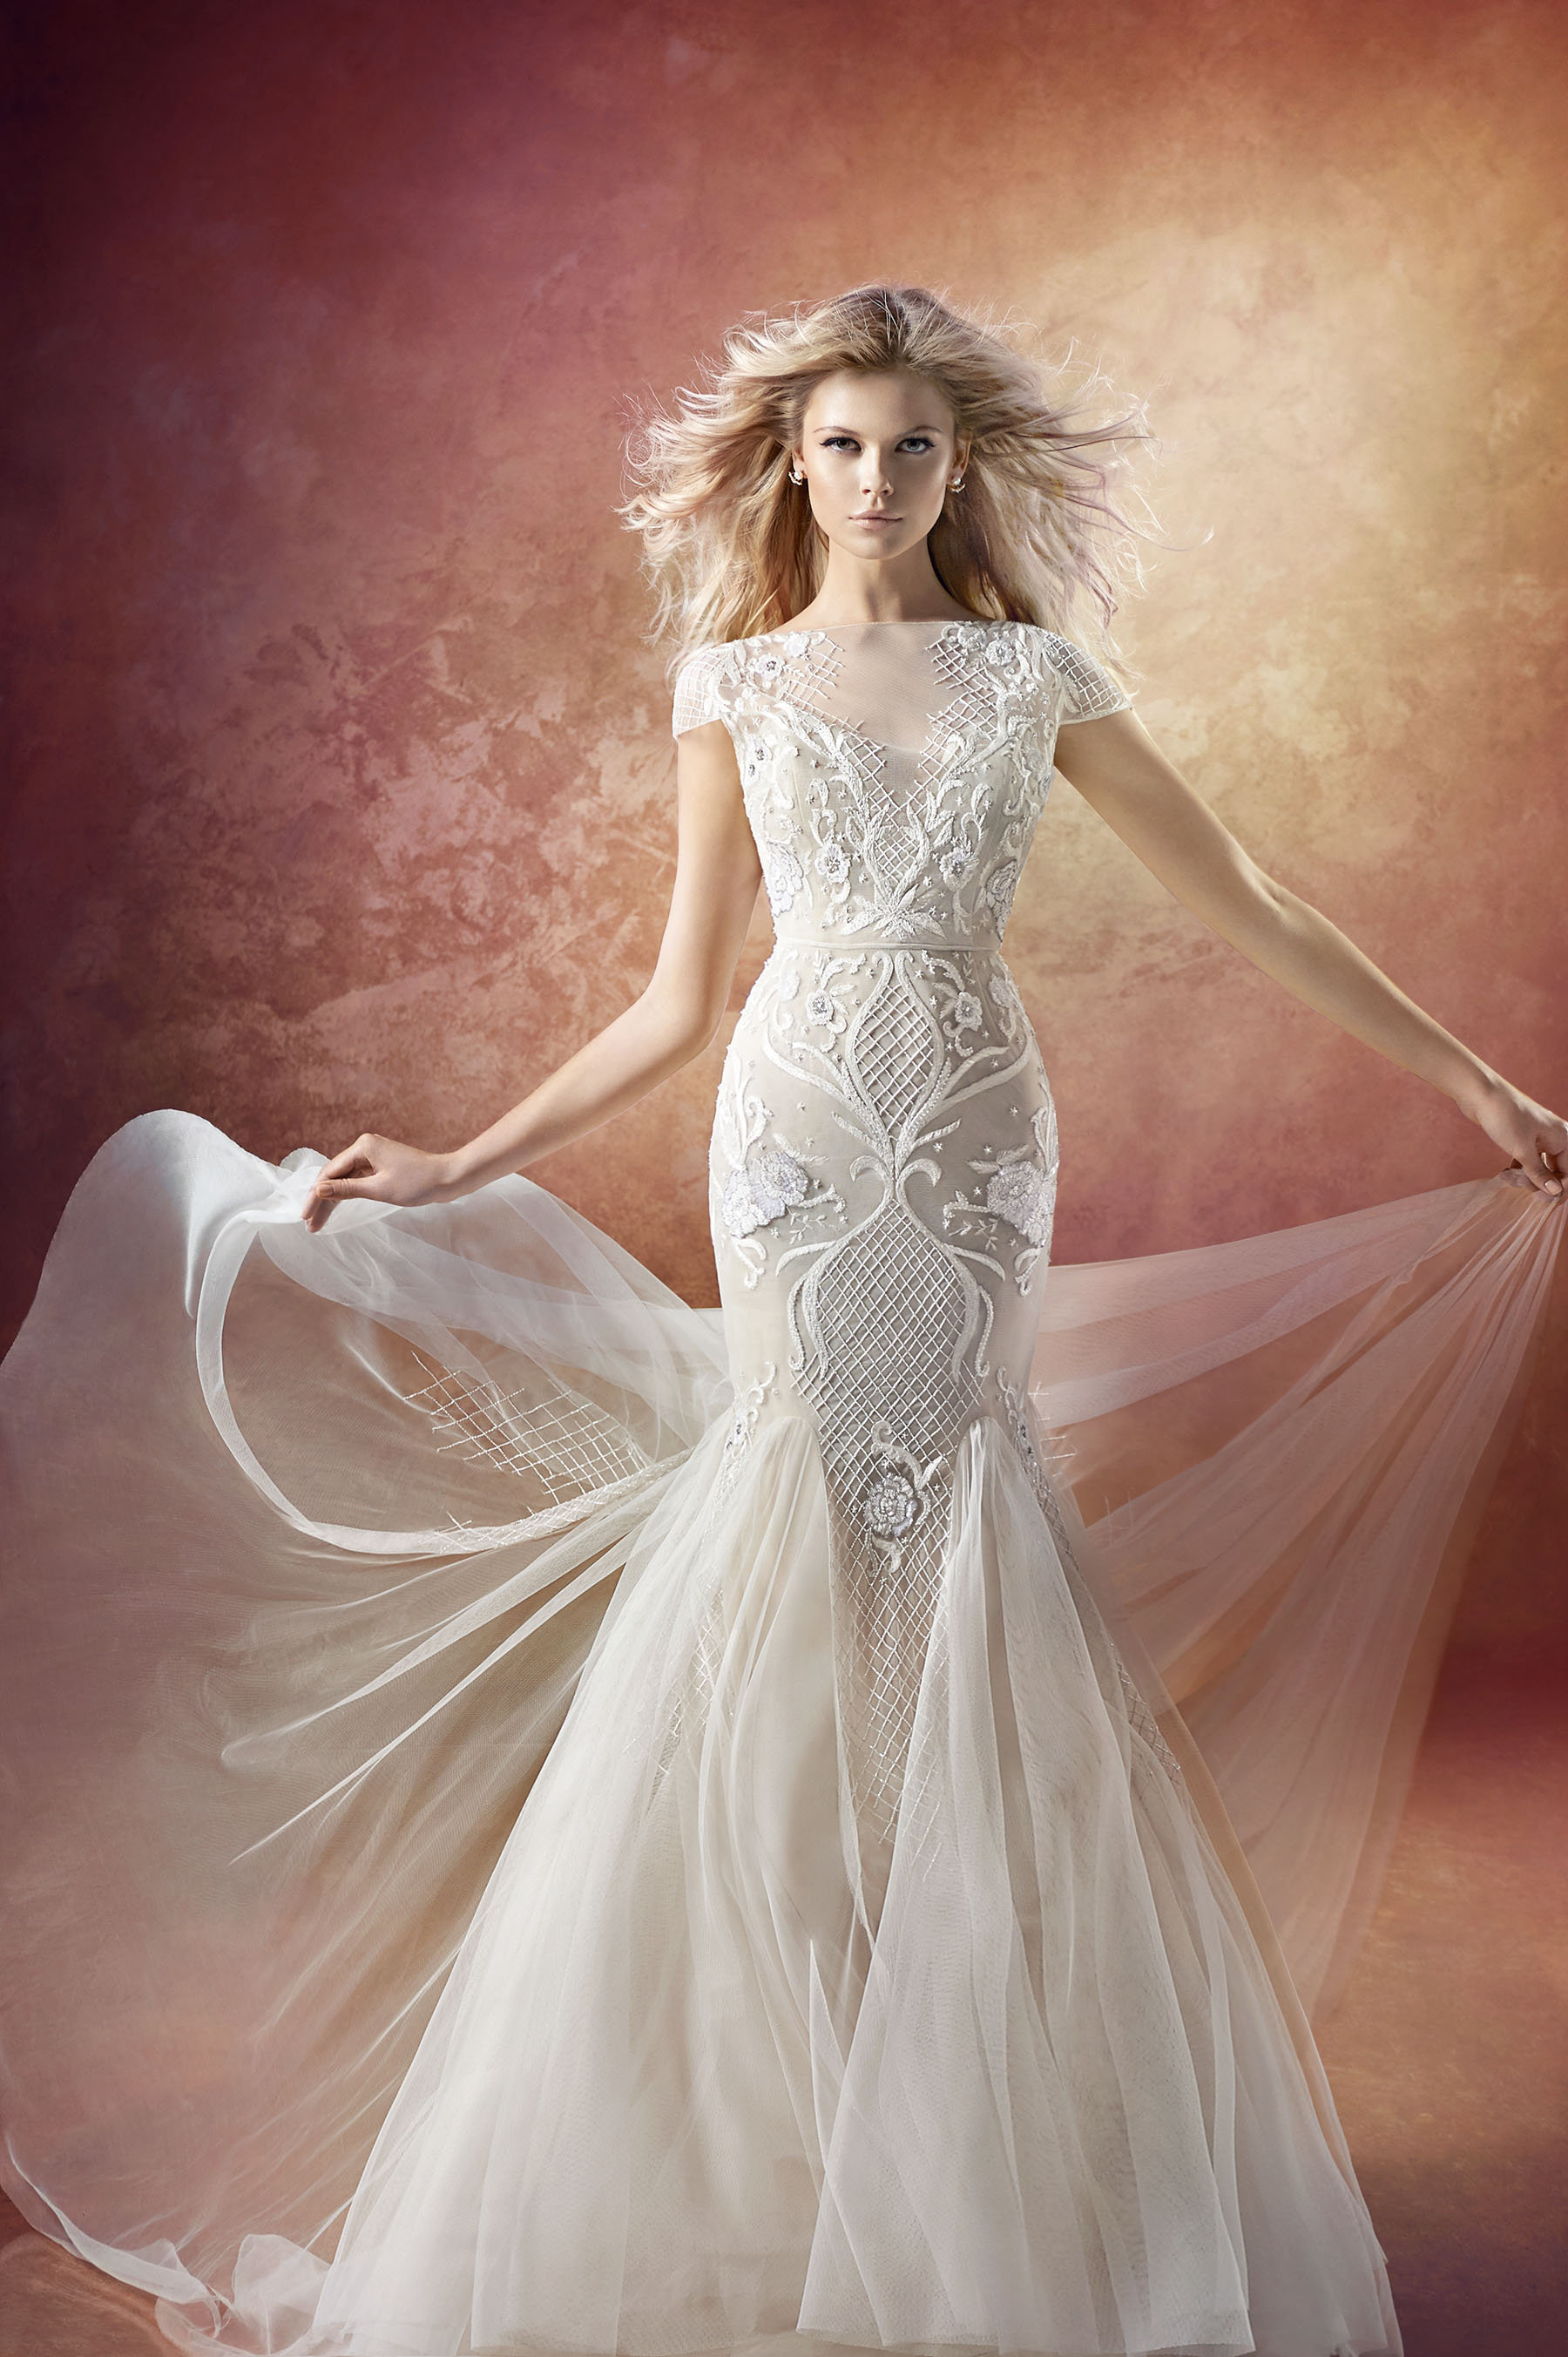 Bridal Gowns and Wedding Dresses by JLM Couture - Style 6657 Vionnet